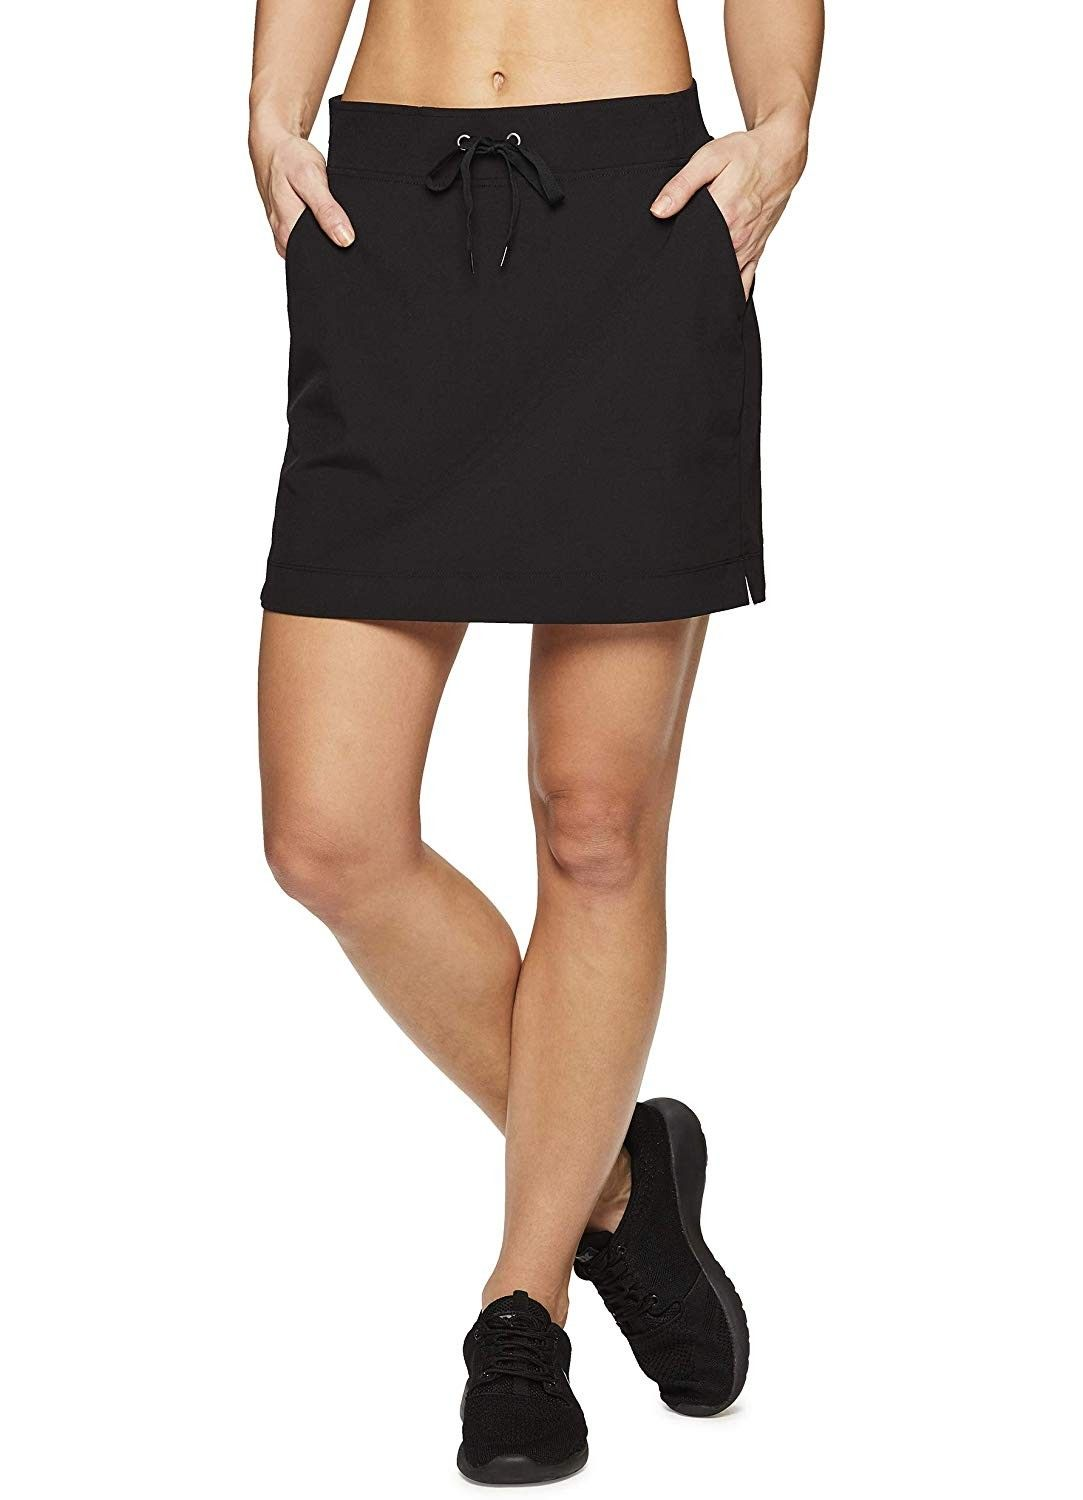 Active Women's Golf/Tennis Everyday Casual Athletic Skort with Bike Shorts - S19 Black - CQ18O7LDUL5...